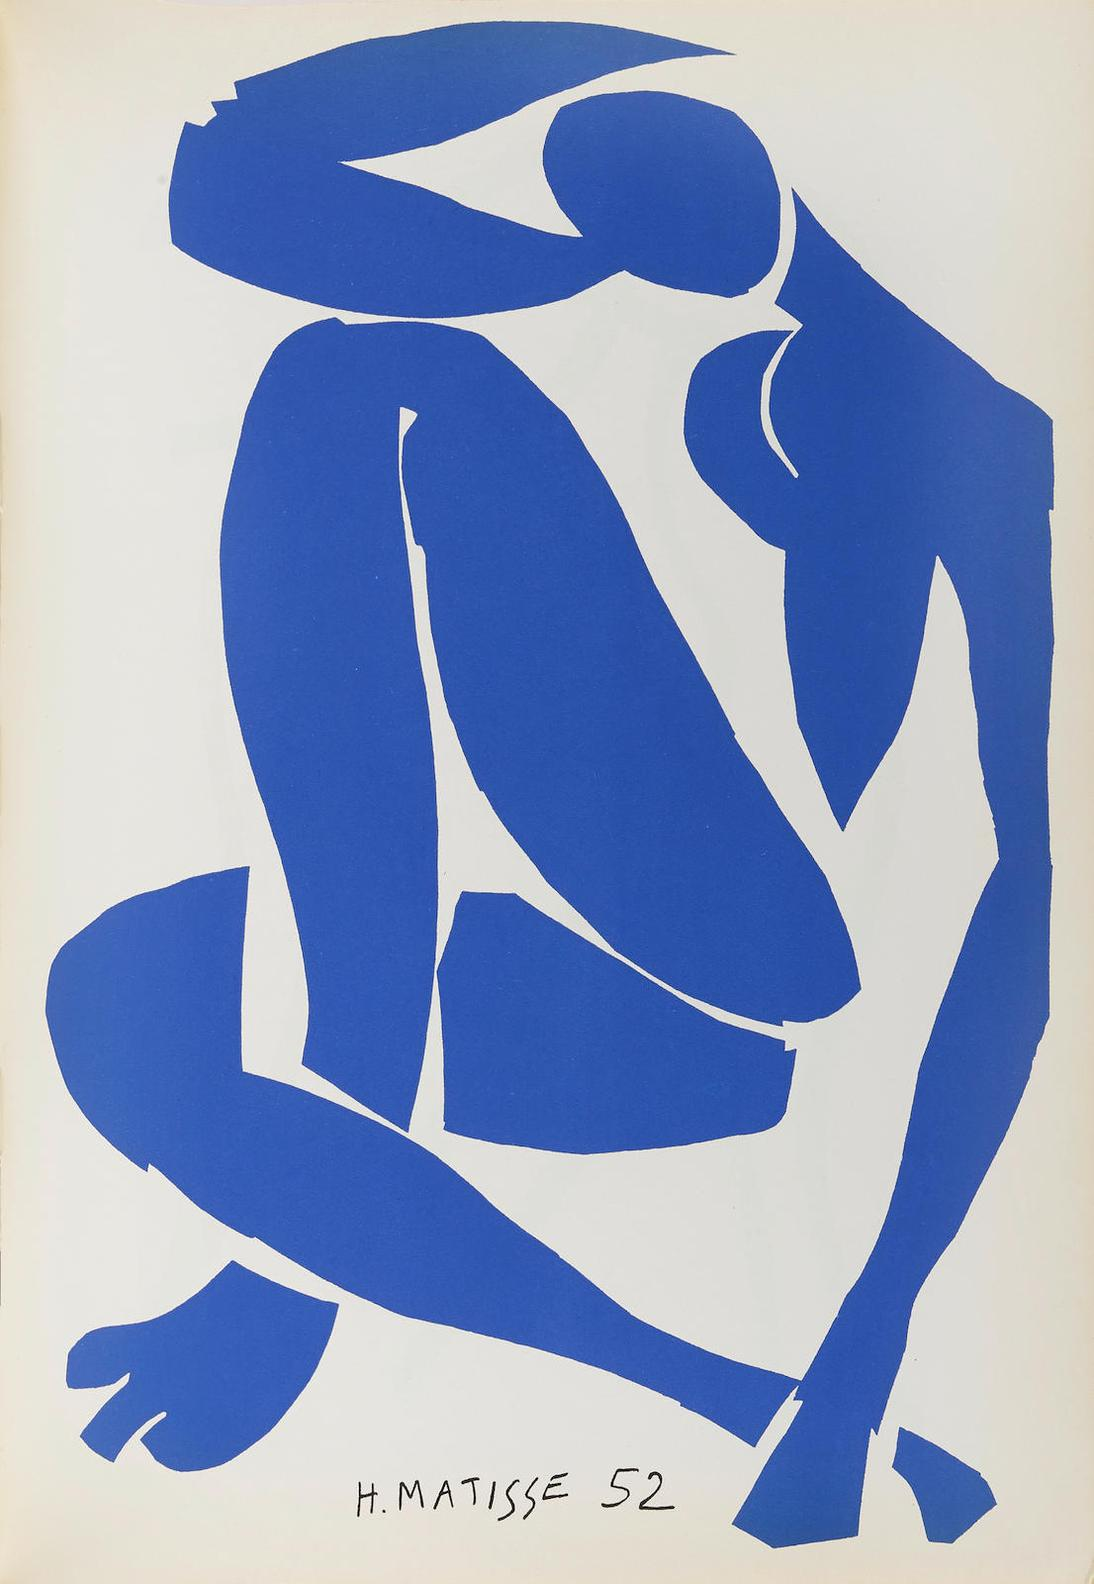 After Henri Matisse - Verve, Volume IX, Numbers 35 And 36-1958